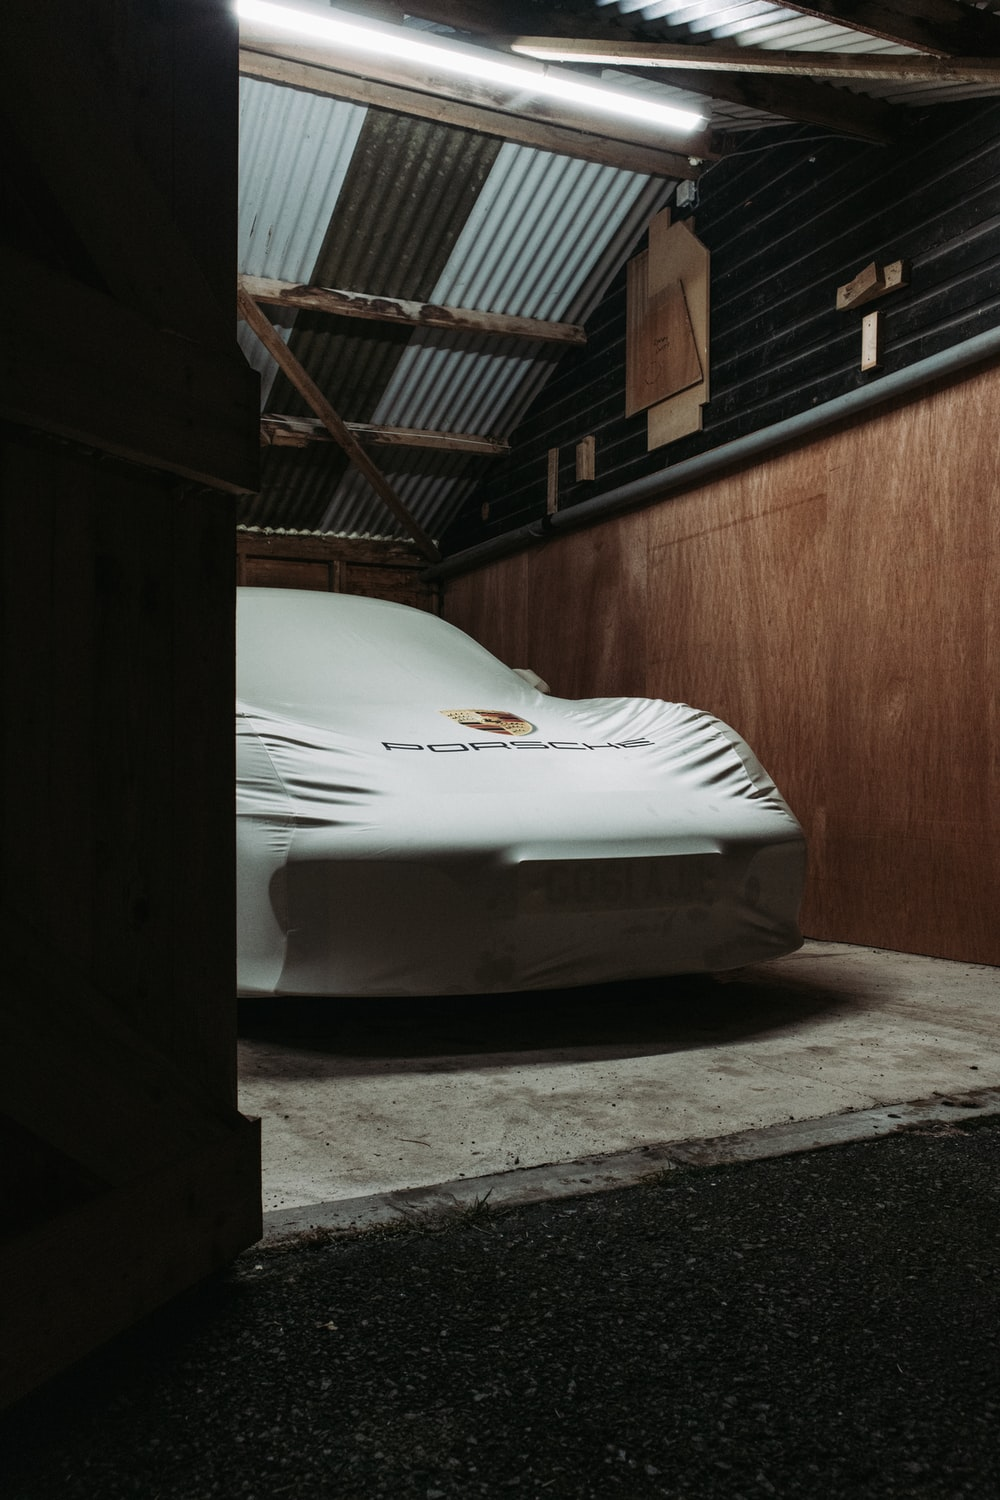 white car parked beside brown wooden wall